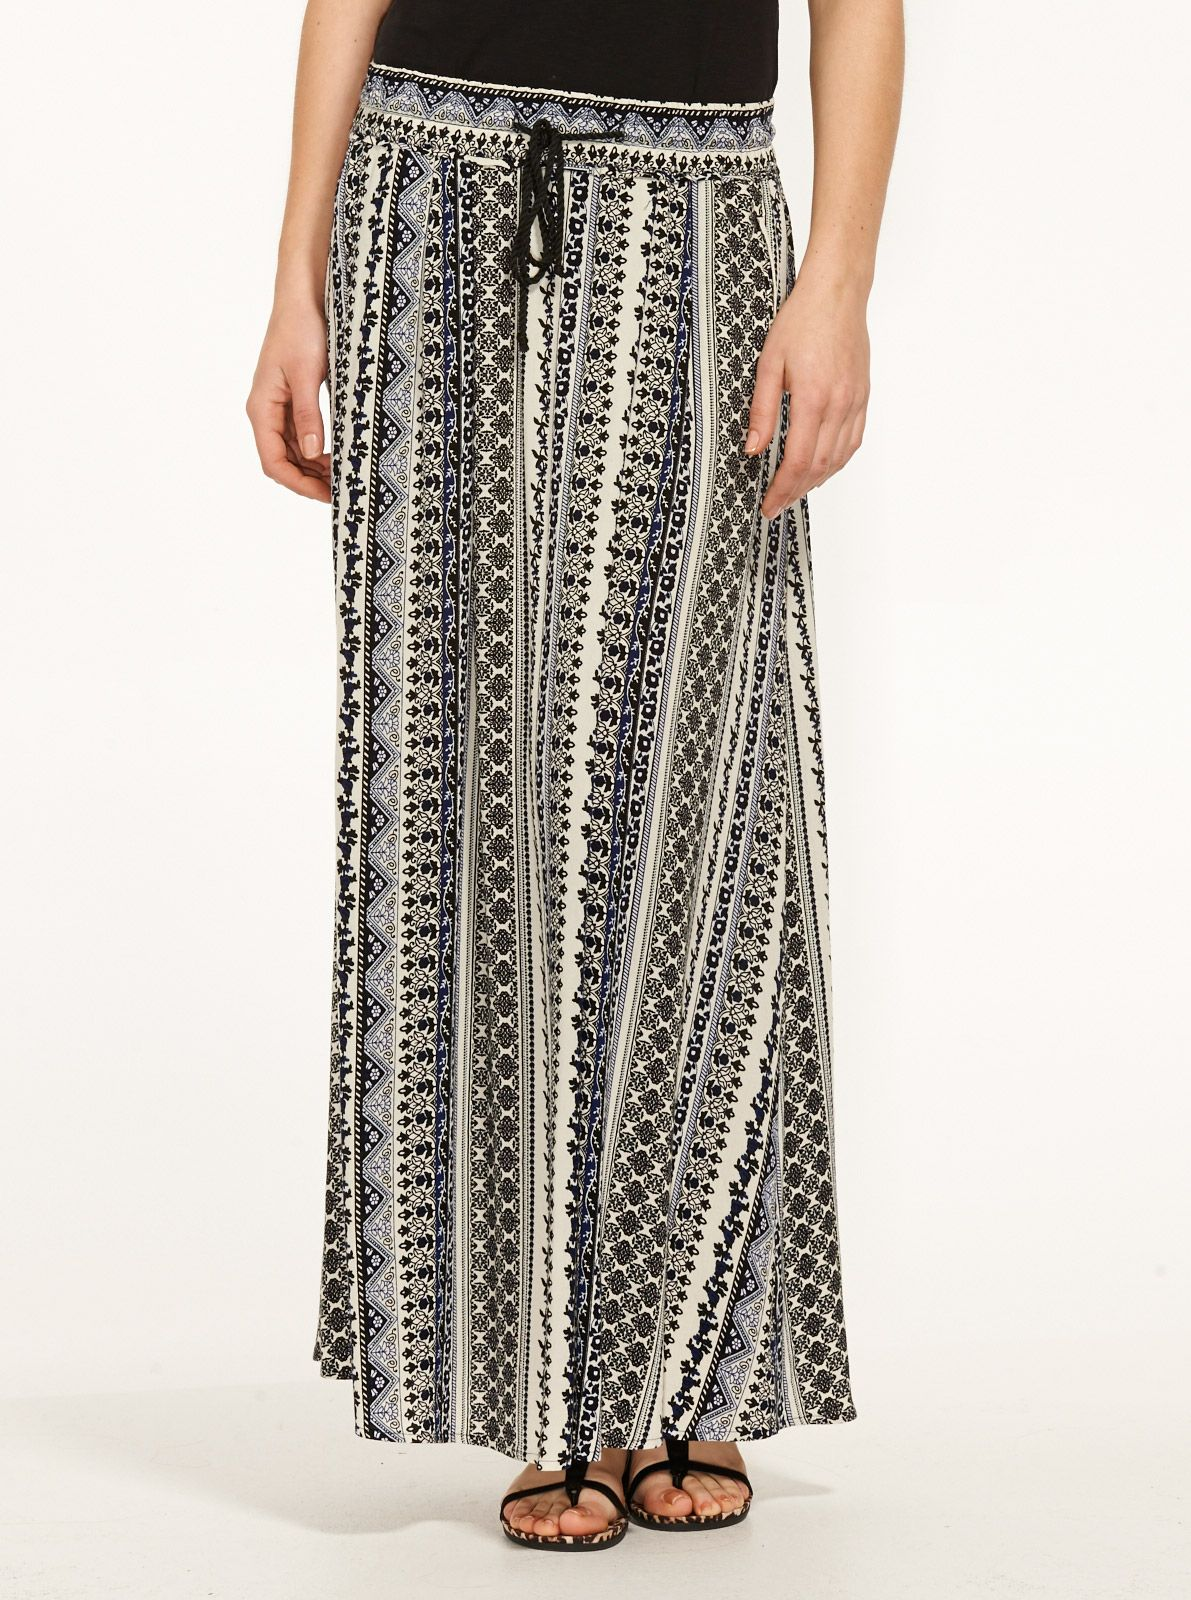 Essential Maxi Skirt | Just Jeans